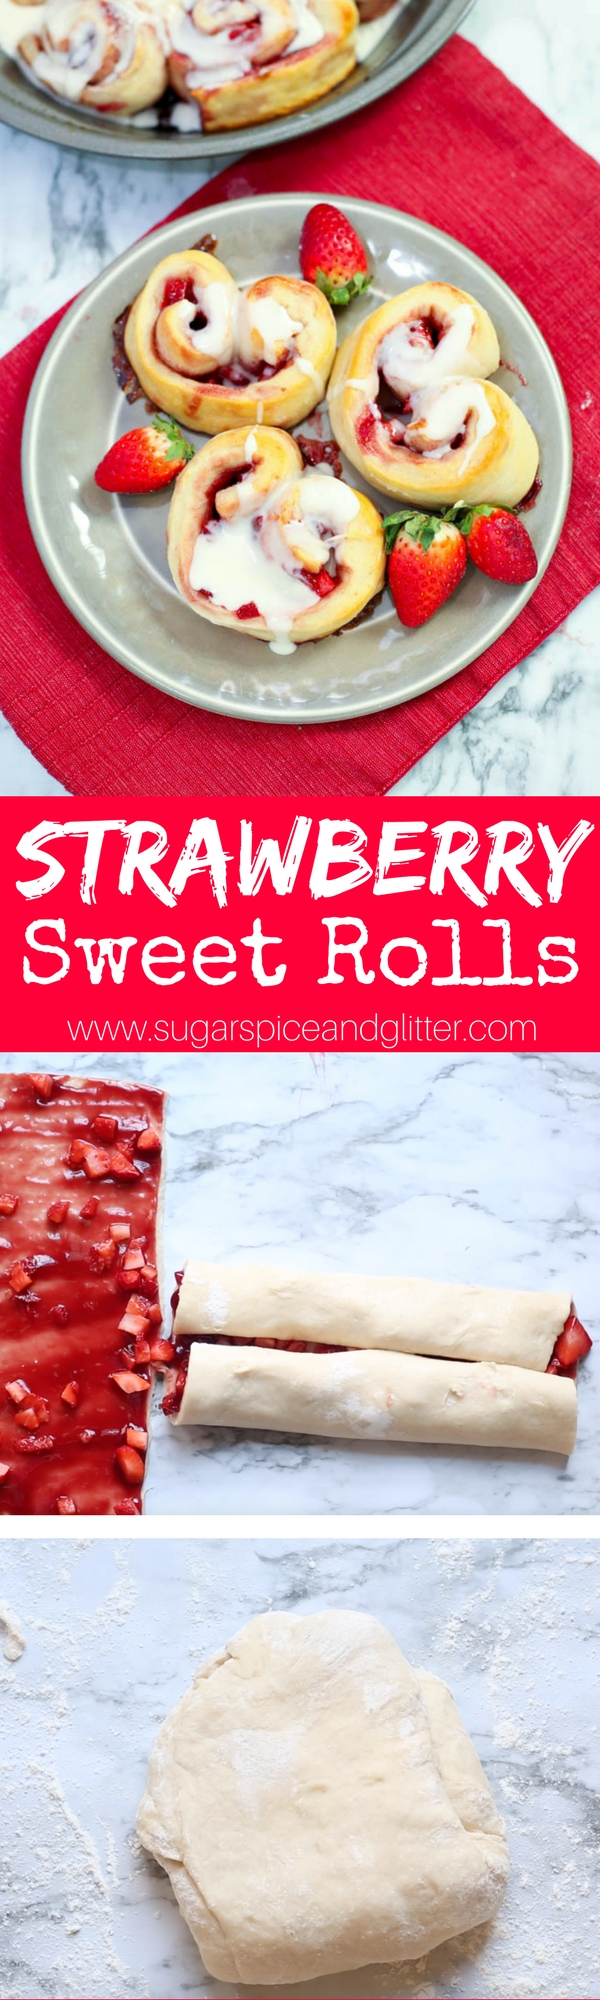 Delicious strawberry sweet rolls - the perfect Valentine's Day brunch or dessert recipe. Heart shaped sweet rolls filled with a fresh strawberry filling and drizzled with cream cheese frosting